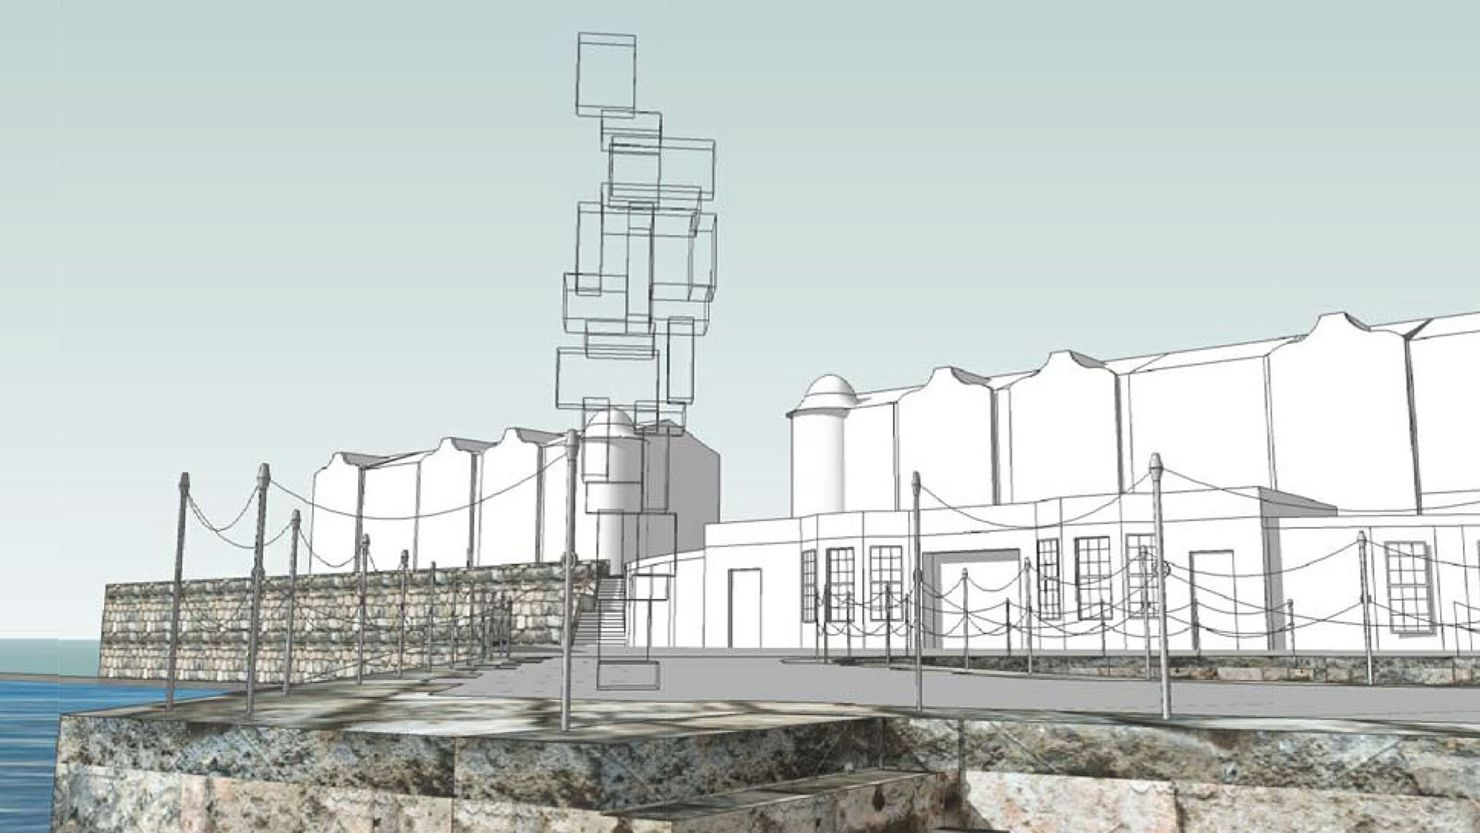 Look II - West Hoe Pier proposed sculpture1. Image courtesy Space Design Architecture Ltd